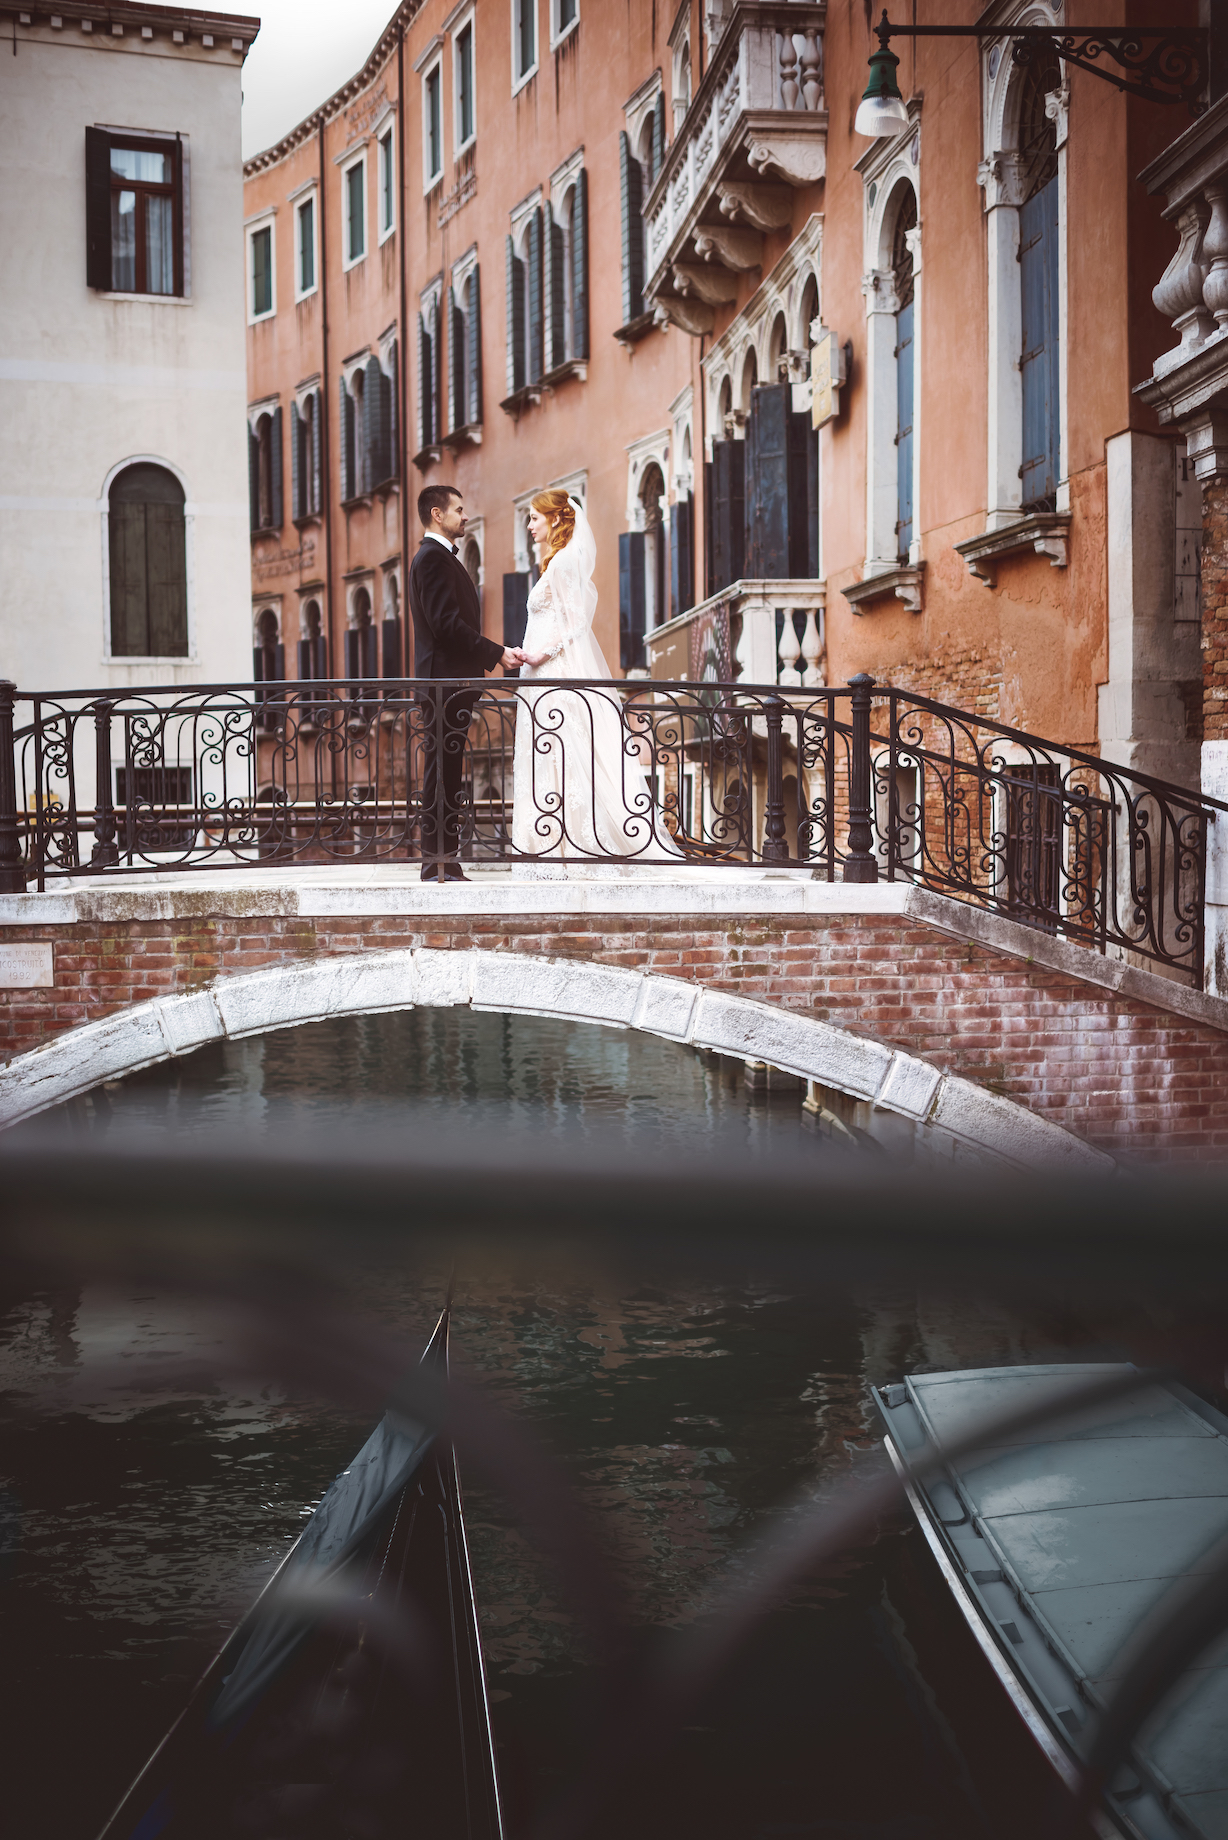 Venice-Wedding-photography-matej-trasak-11.jpg